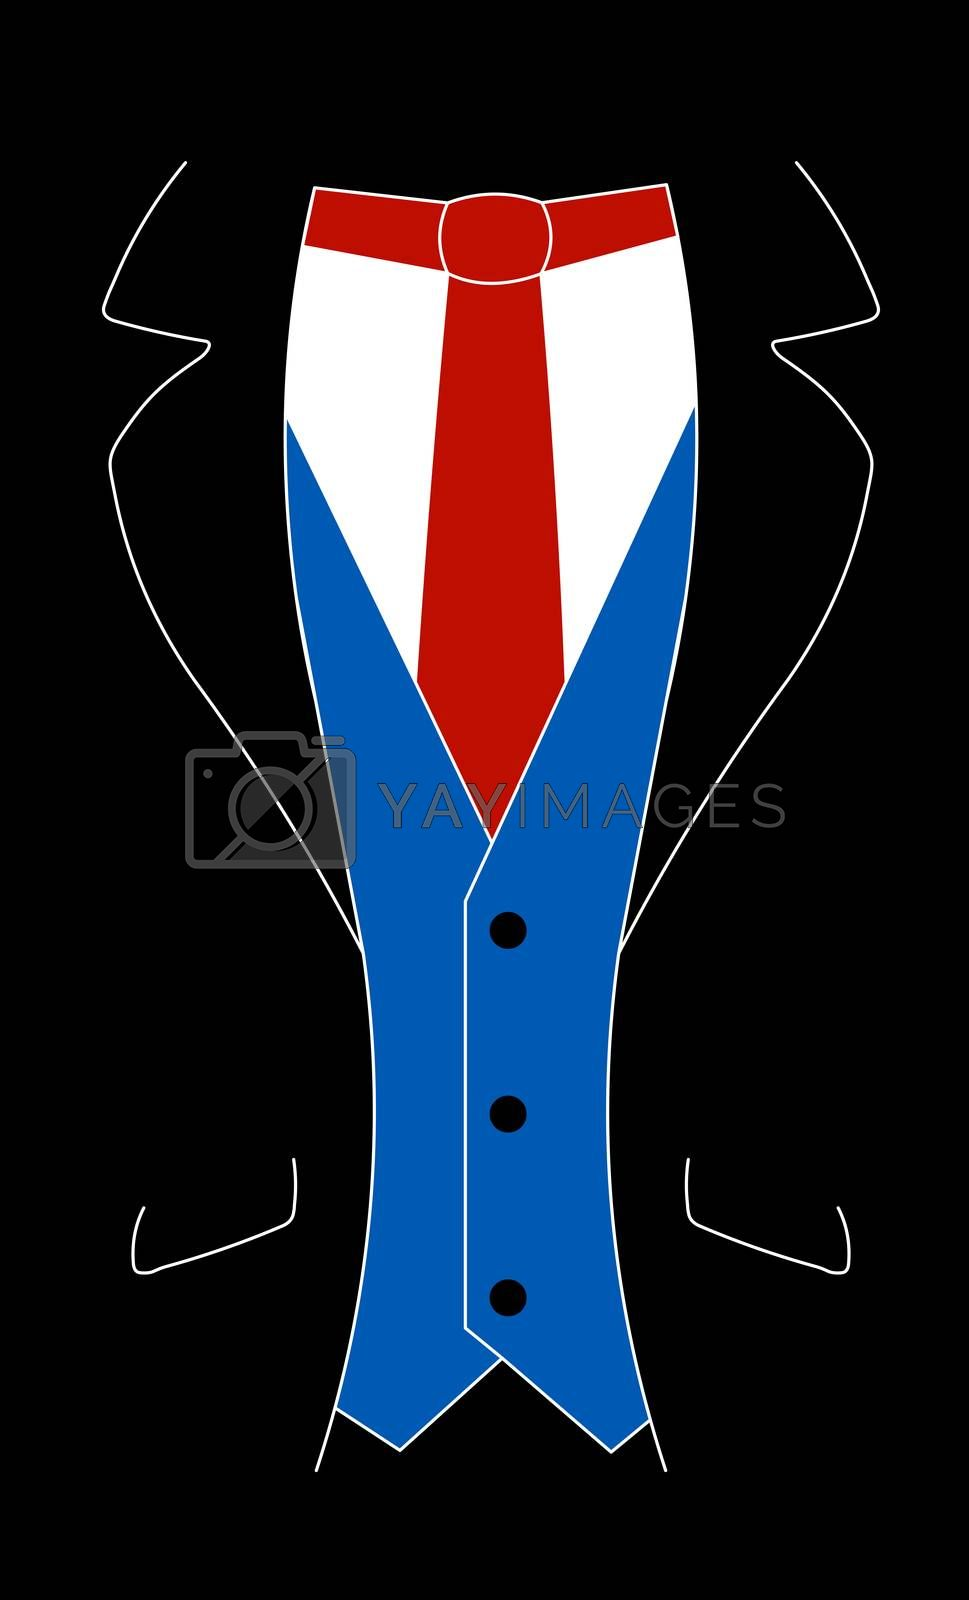 A suit with a red tie and blue iner jacket.